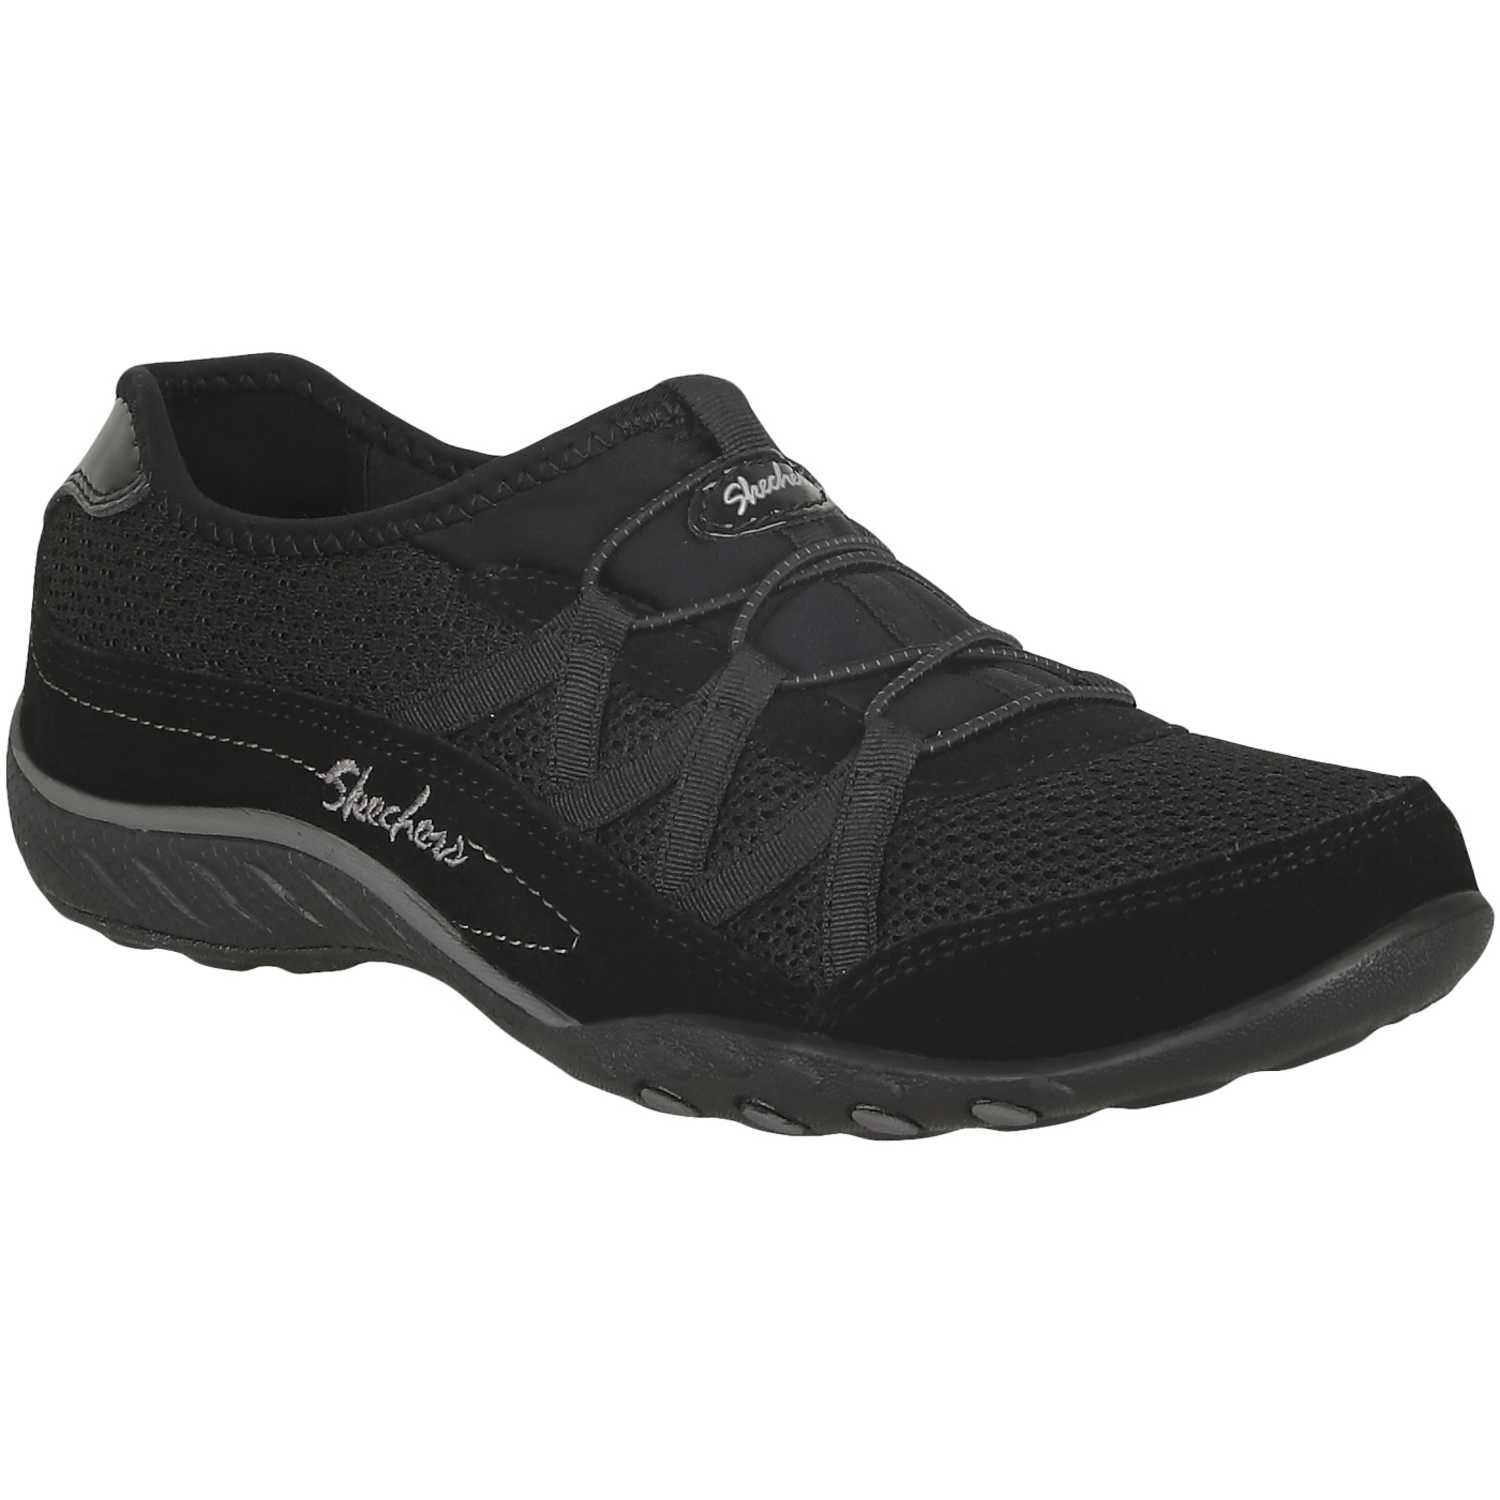 Zapatos negros Skechers para mujer UD1ixLR7c